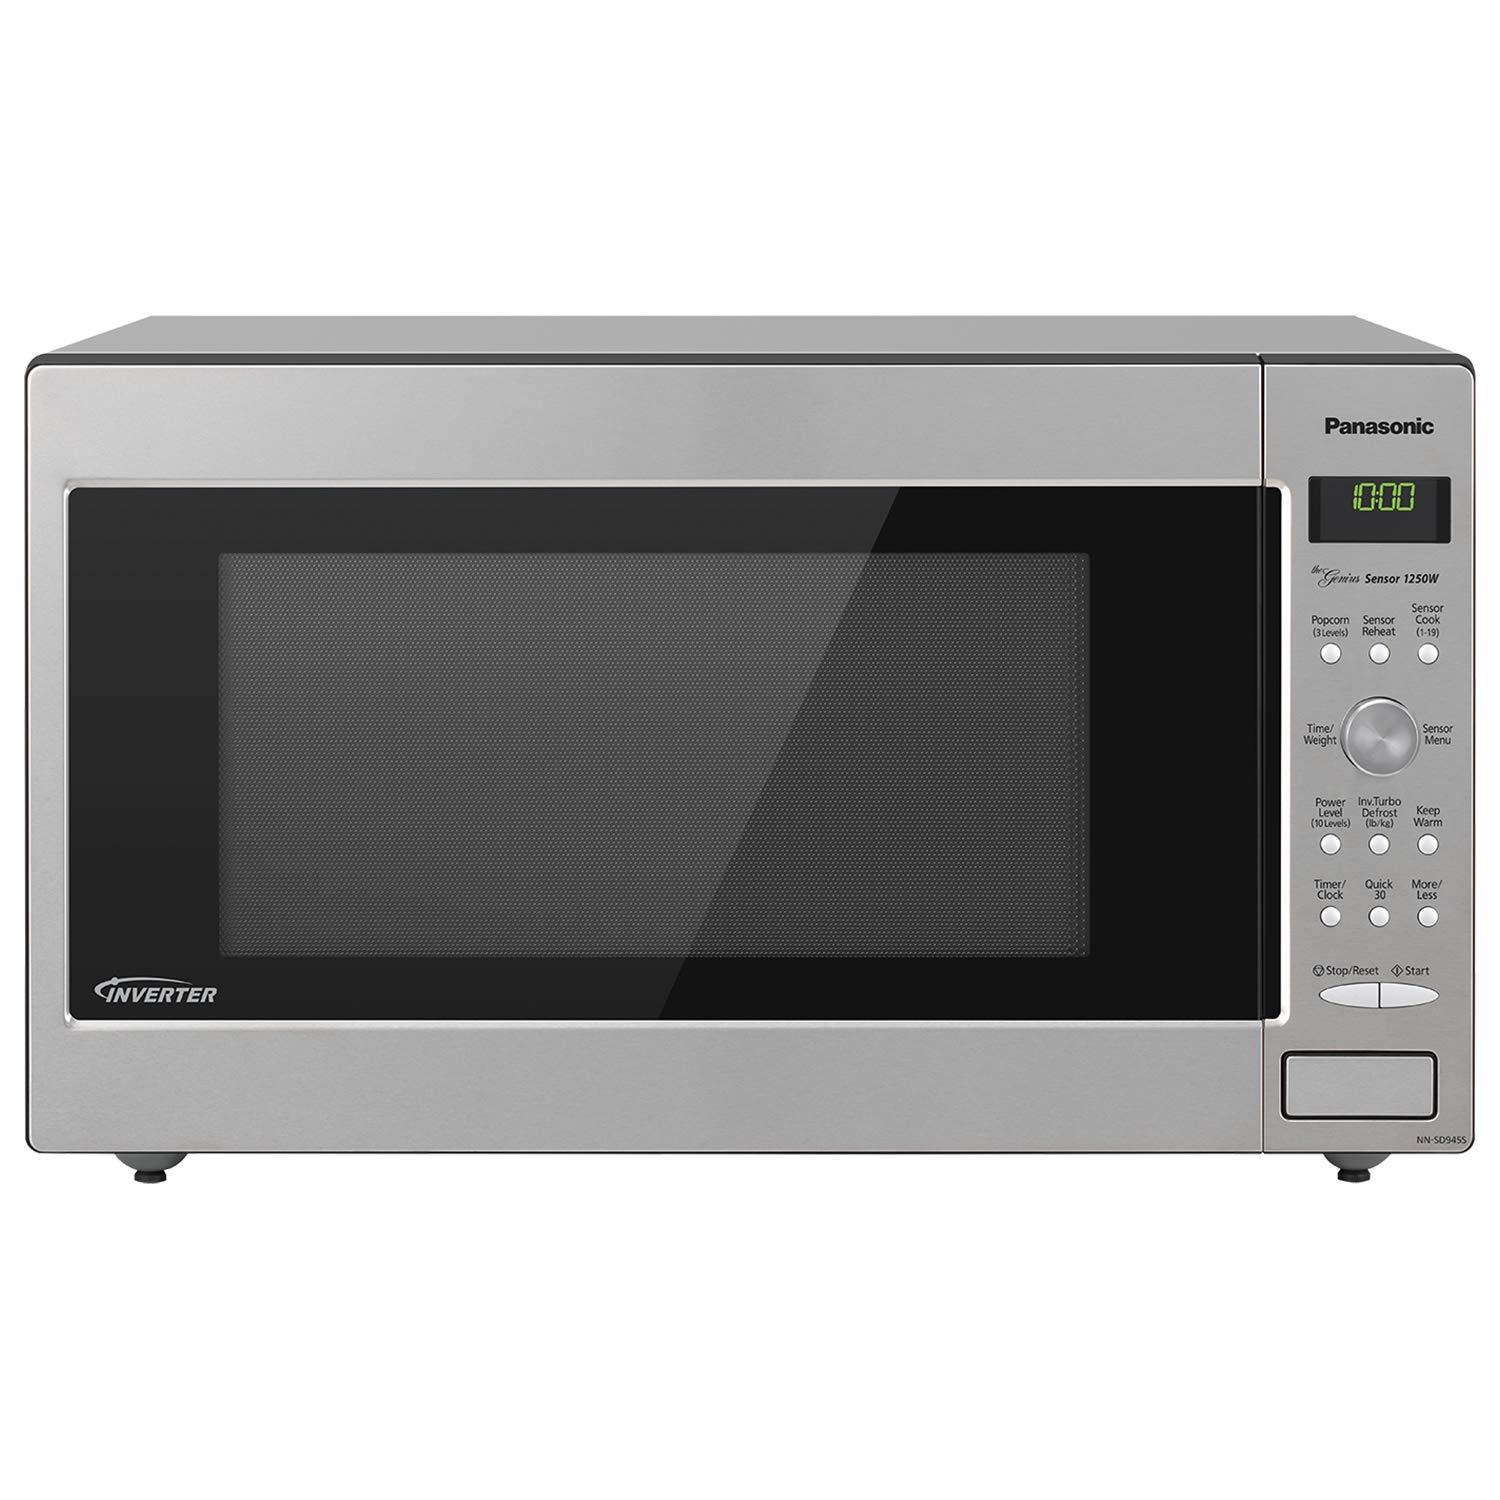 Amazon.com: Panasonic NN-SD755S / NN-SD765S Cyclonic Wave Inverter Technology Microwave Oven, 1.6 cu. Ft, Stainless (Certified Refurbished): Kitchen & ...